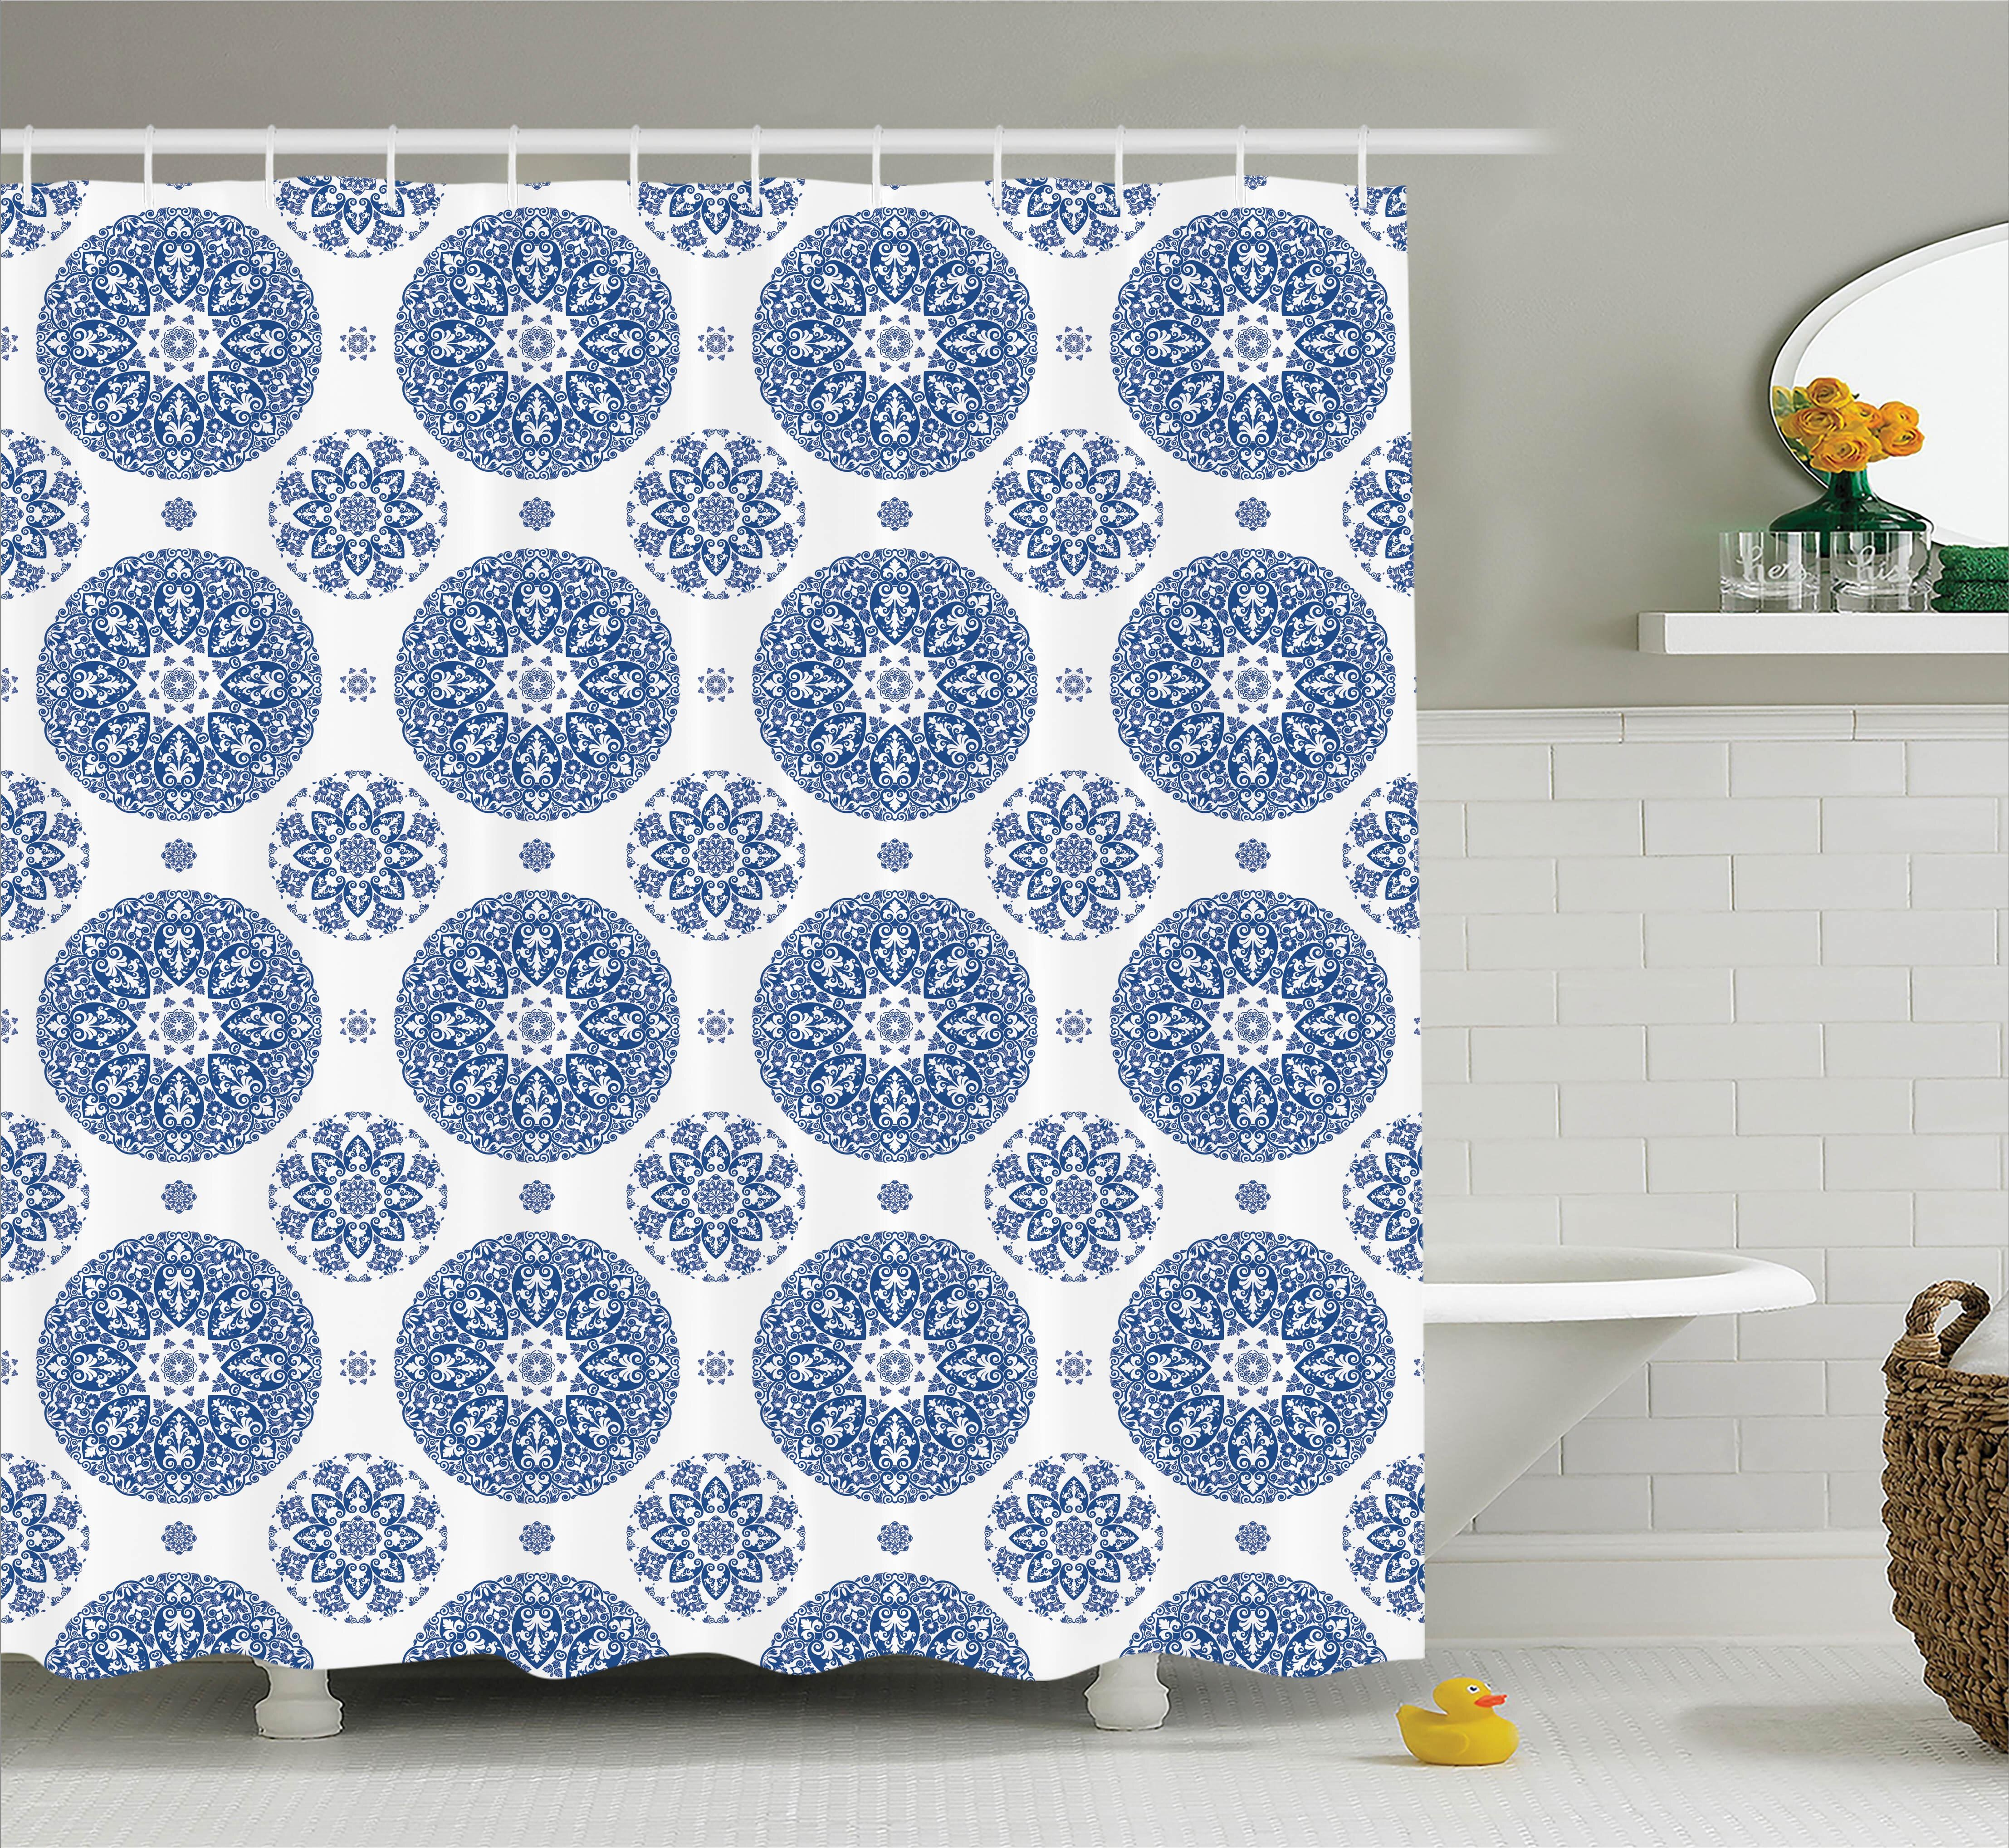 Hayes French Country Style Fl Circular Pattern Lace Snowflake Design Print Single Shower Curtain